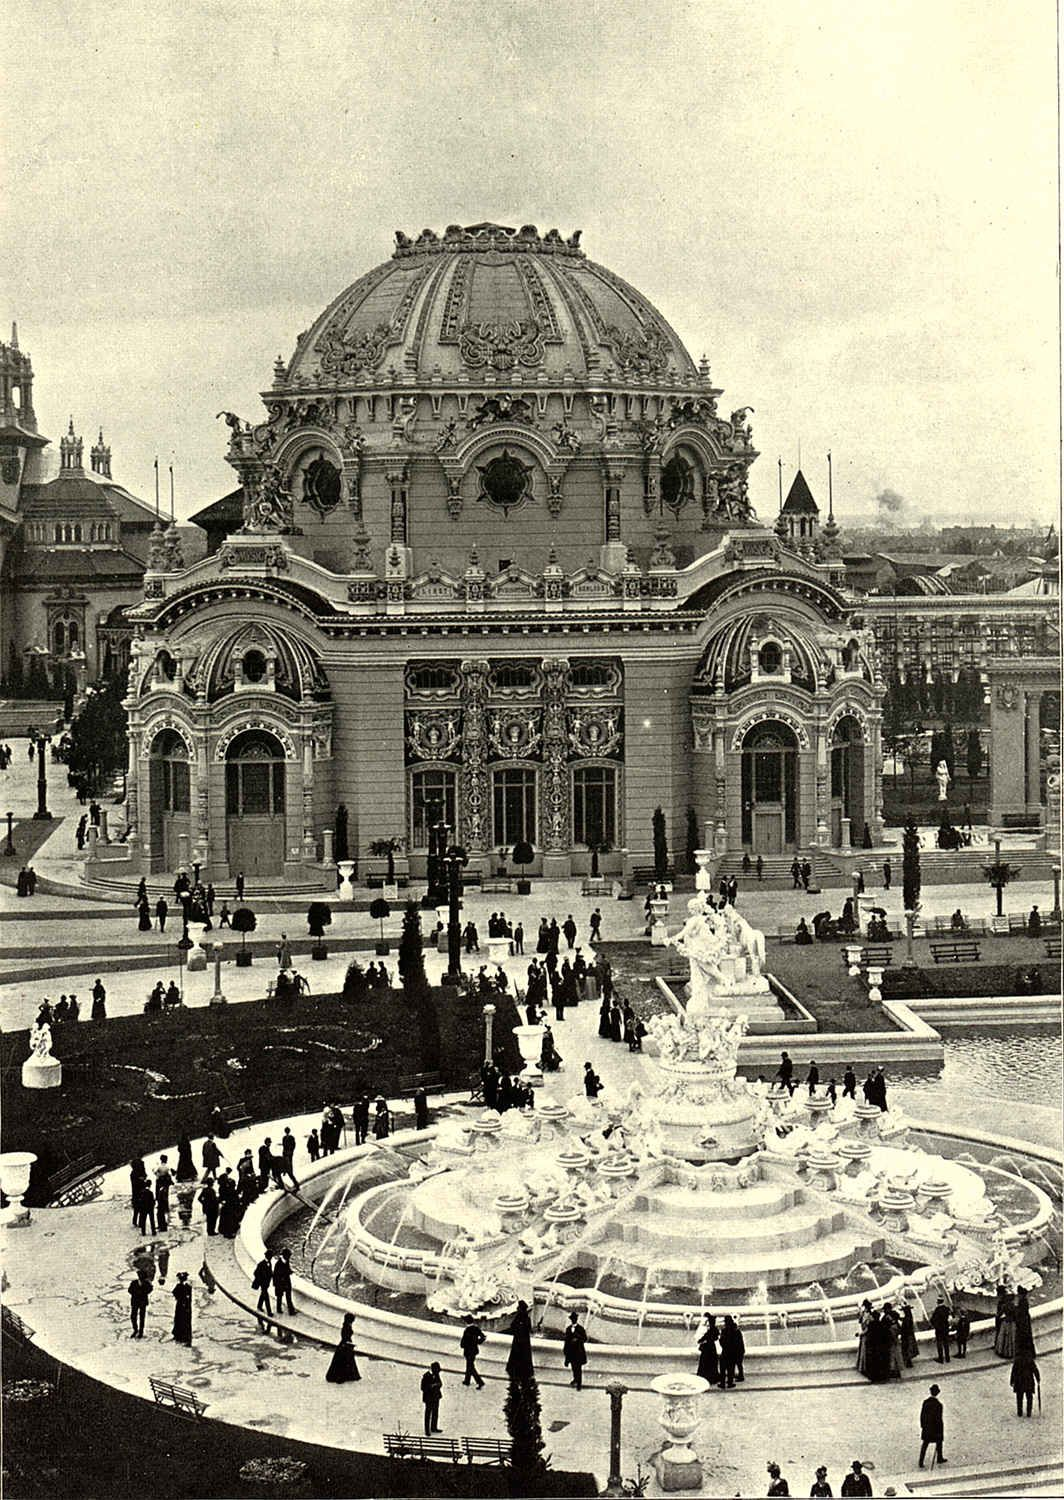 The Fountain of Abundance in front of the Temple of Music at the Pan American Exposition